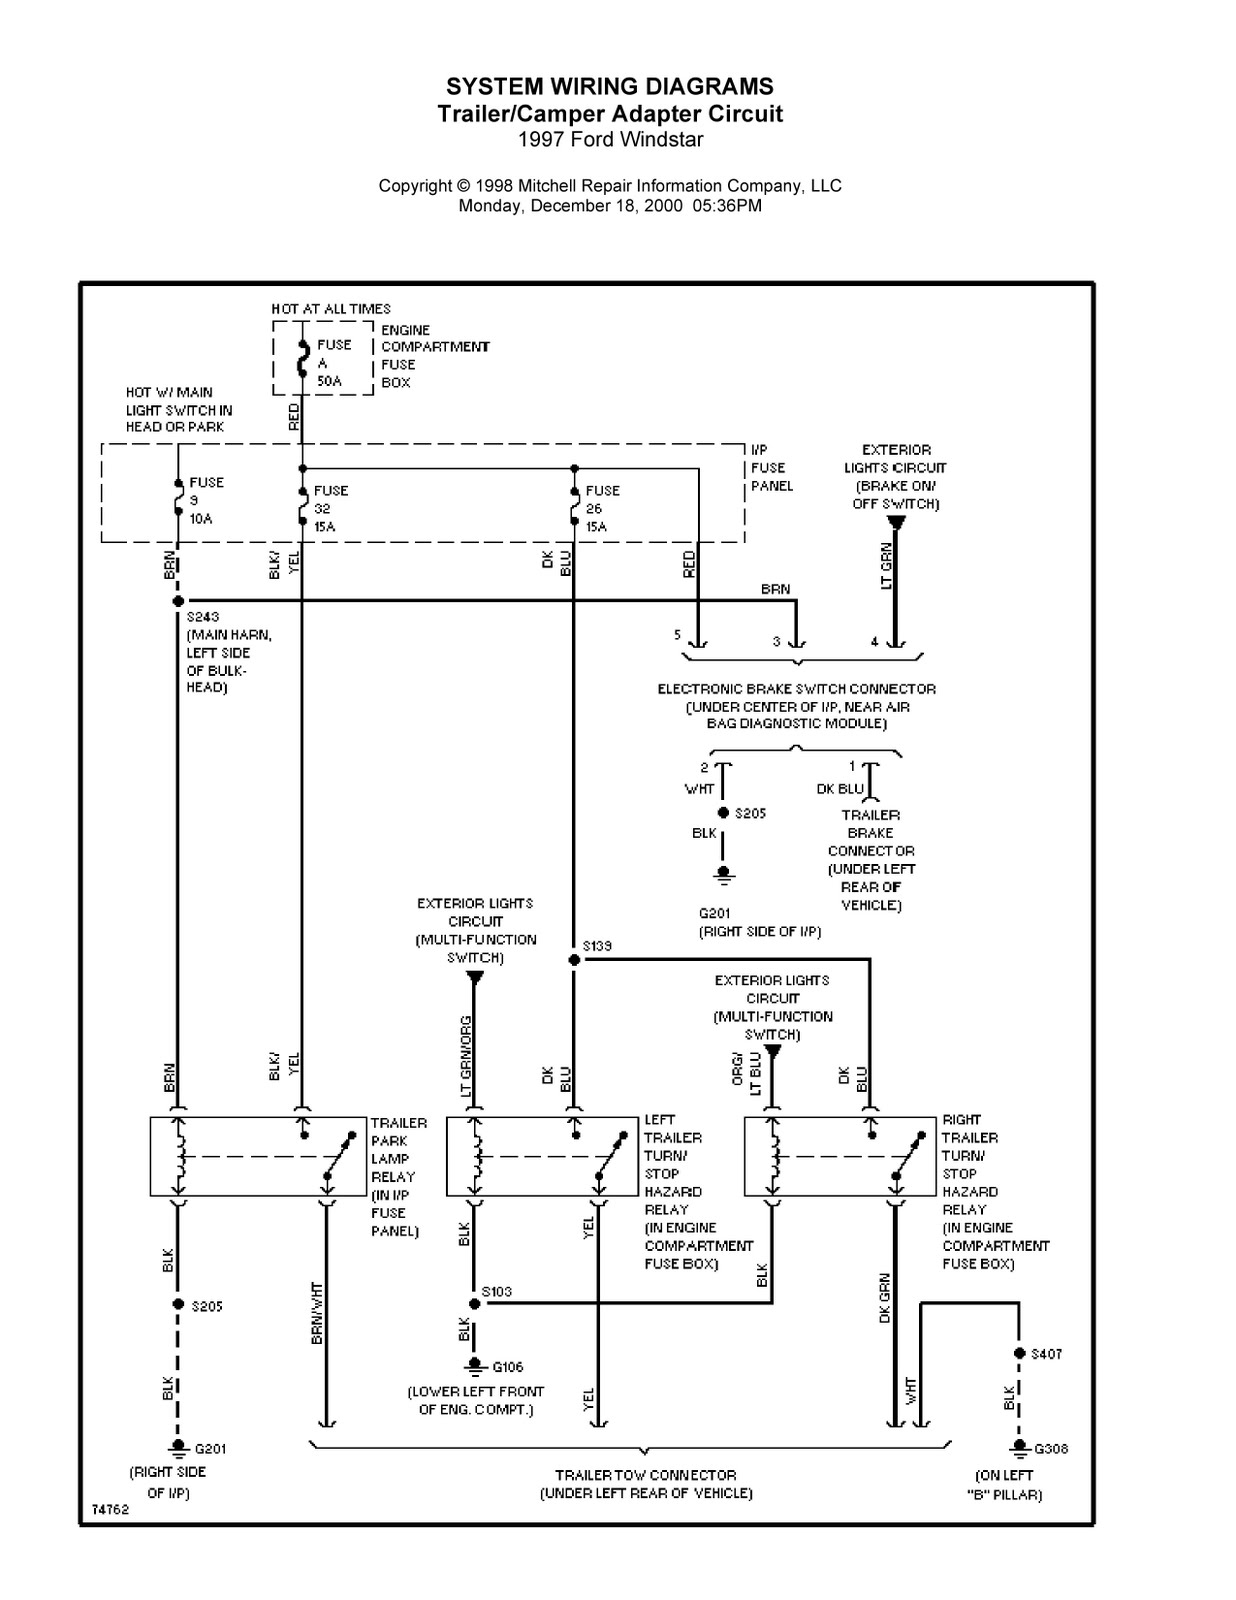 1997 Ford Windstar Complete System Wiring Diagrams ...